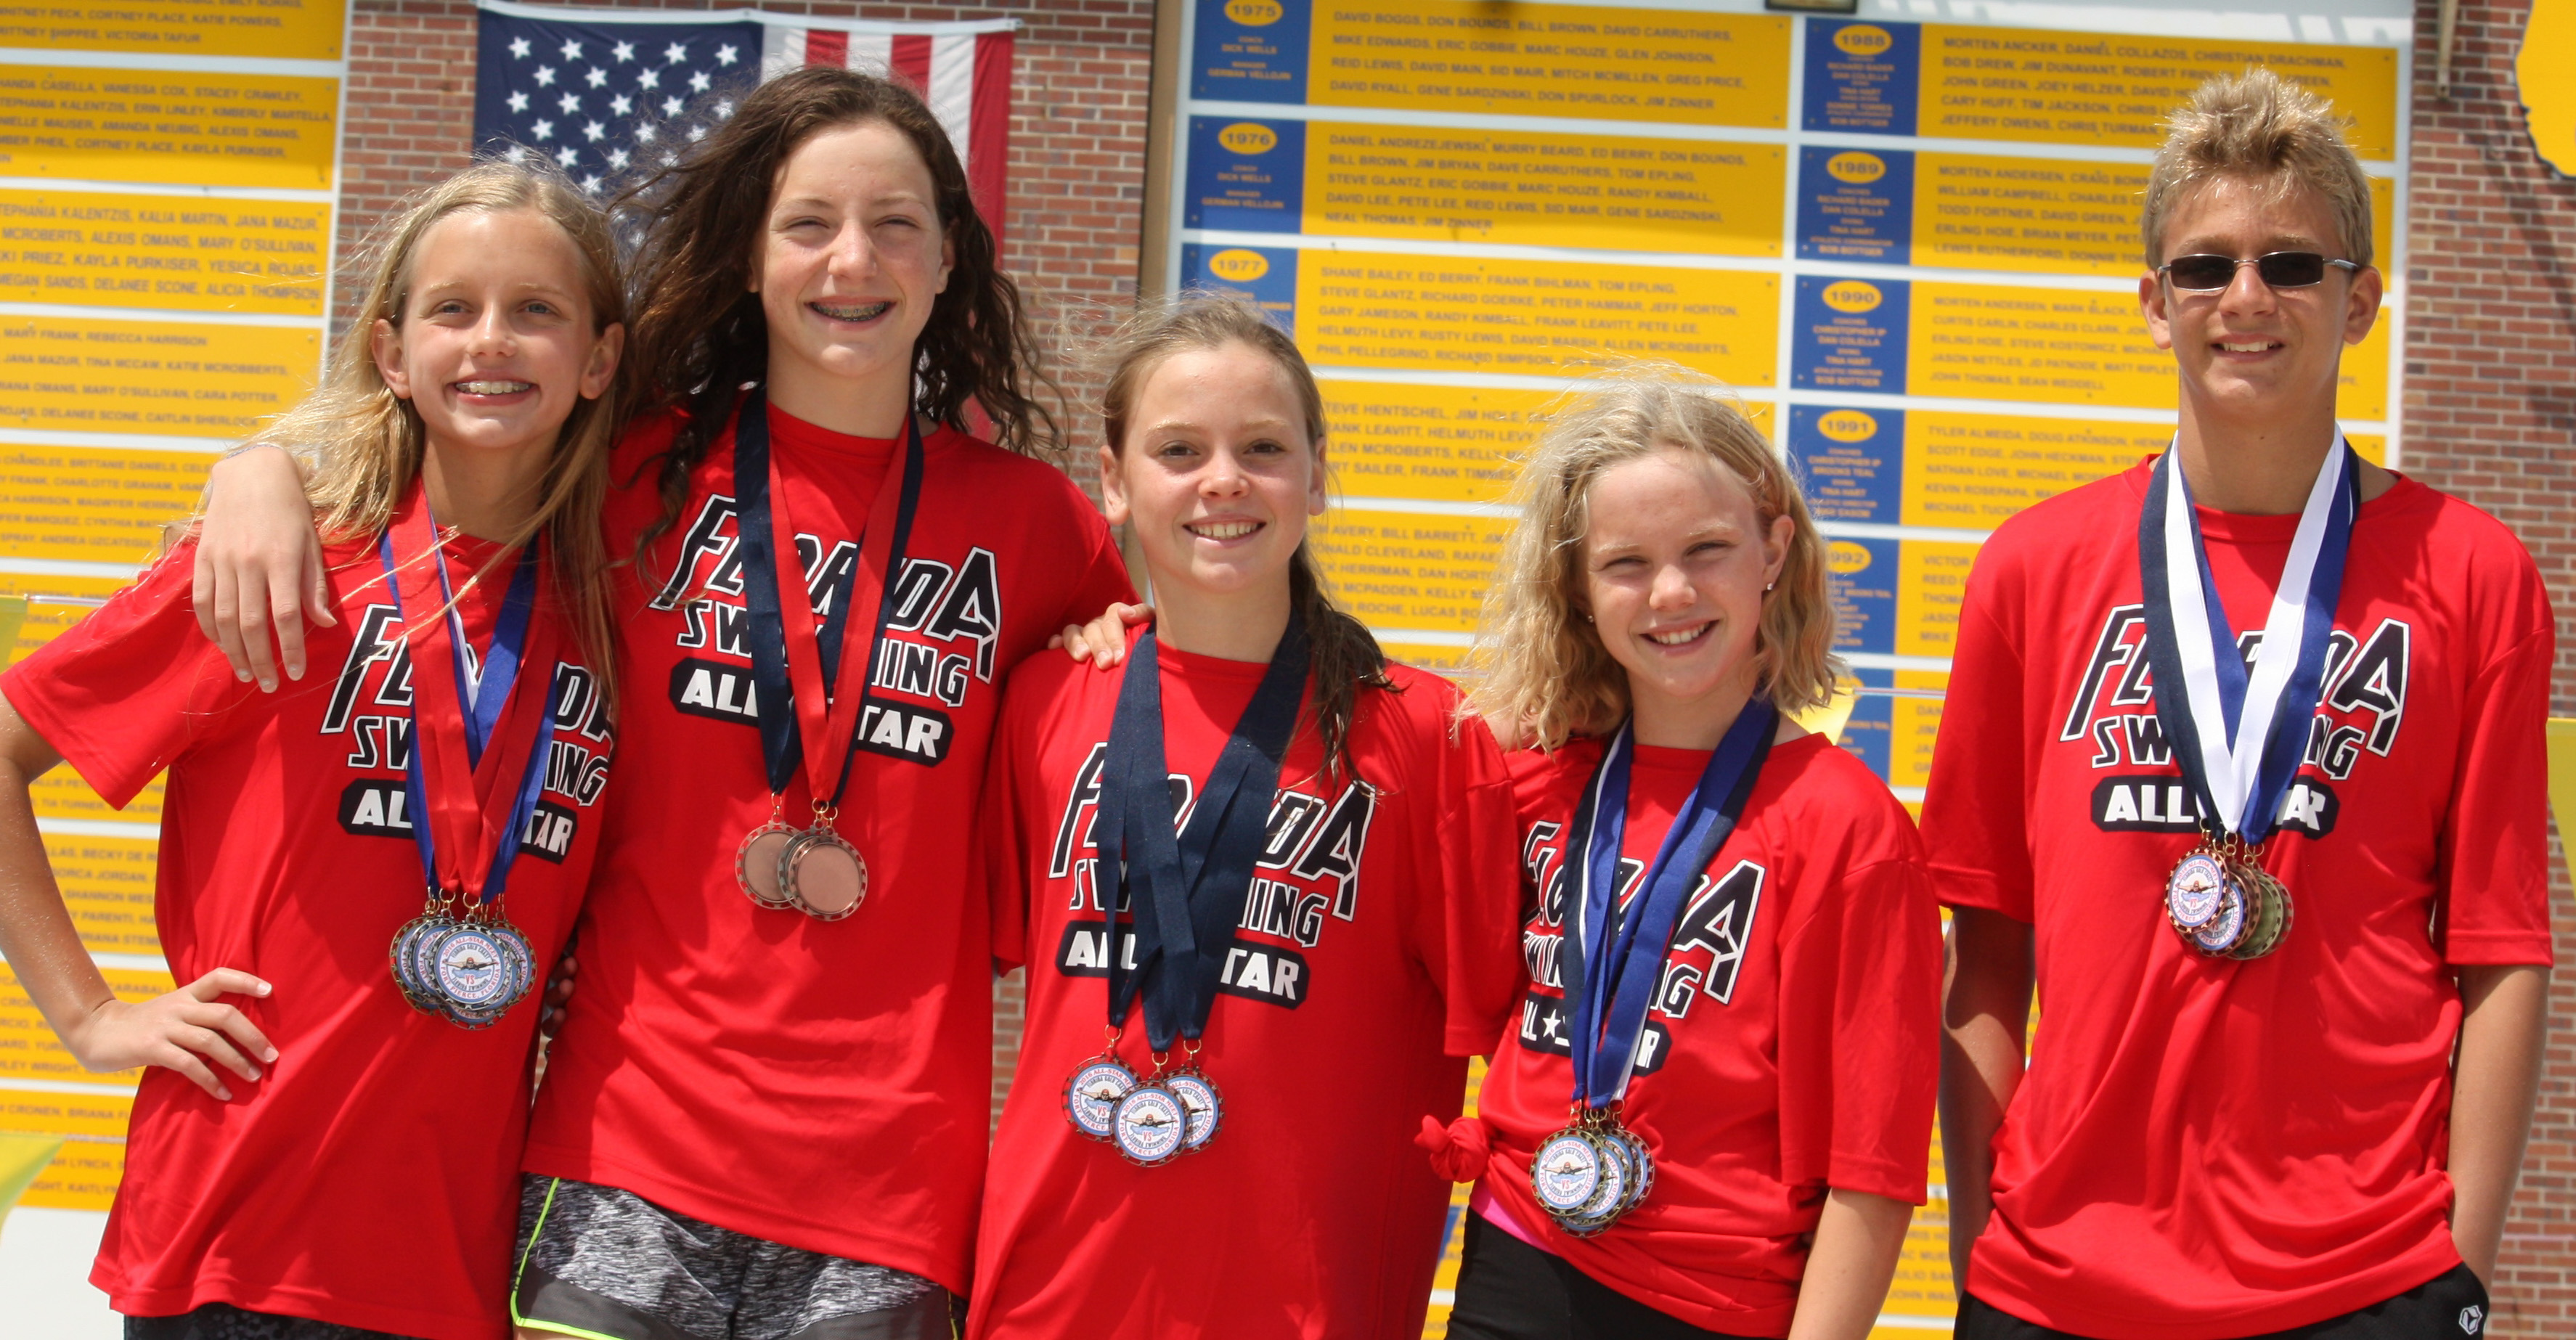 Sara Stotler, Emma Chestang, Brooke Arnold, Anna Moore and David Gapinski with their medals